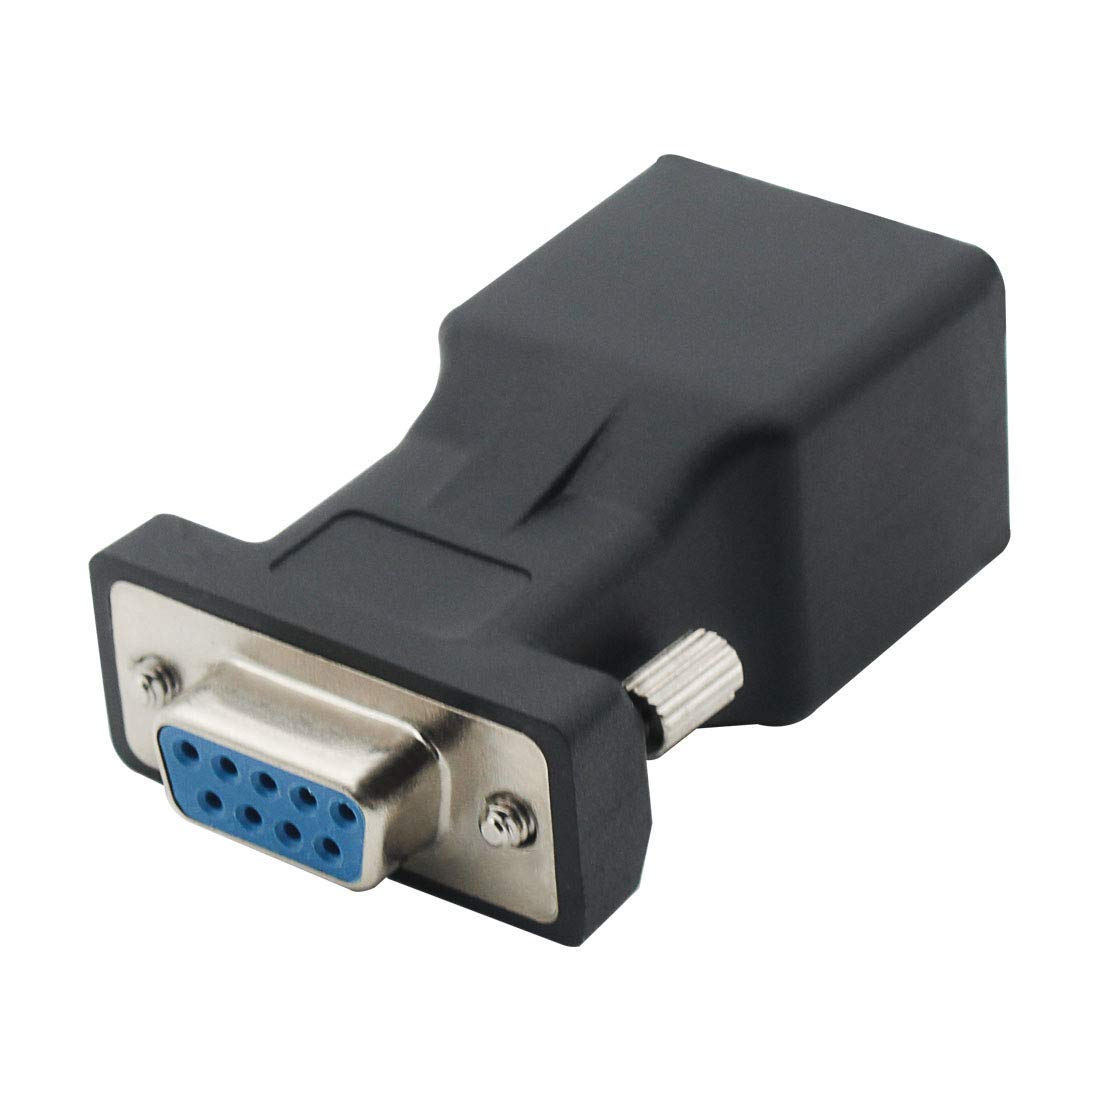 DB9 RS232 Female Port to RJ45 Female Connector Card DB9 Serial Port Extender to LAN CAT5 CAT6 RJ45 Network Ethernet Cable Adapter